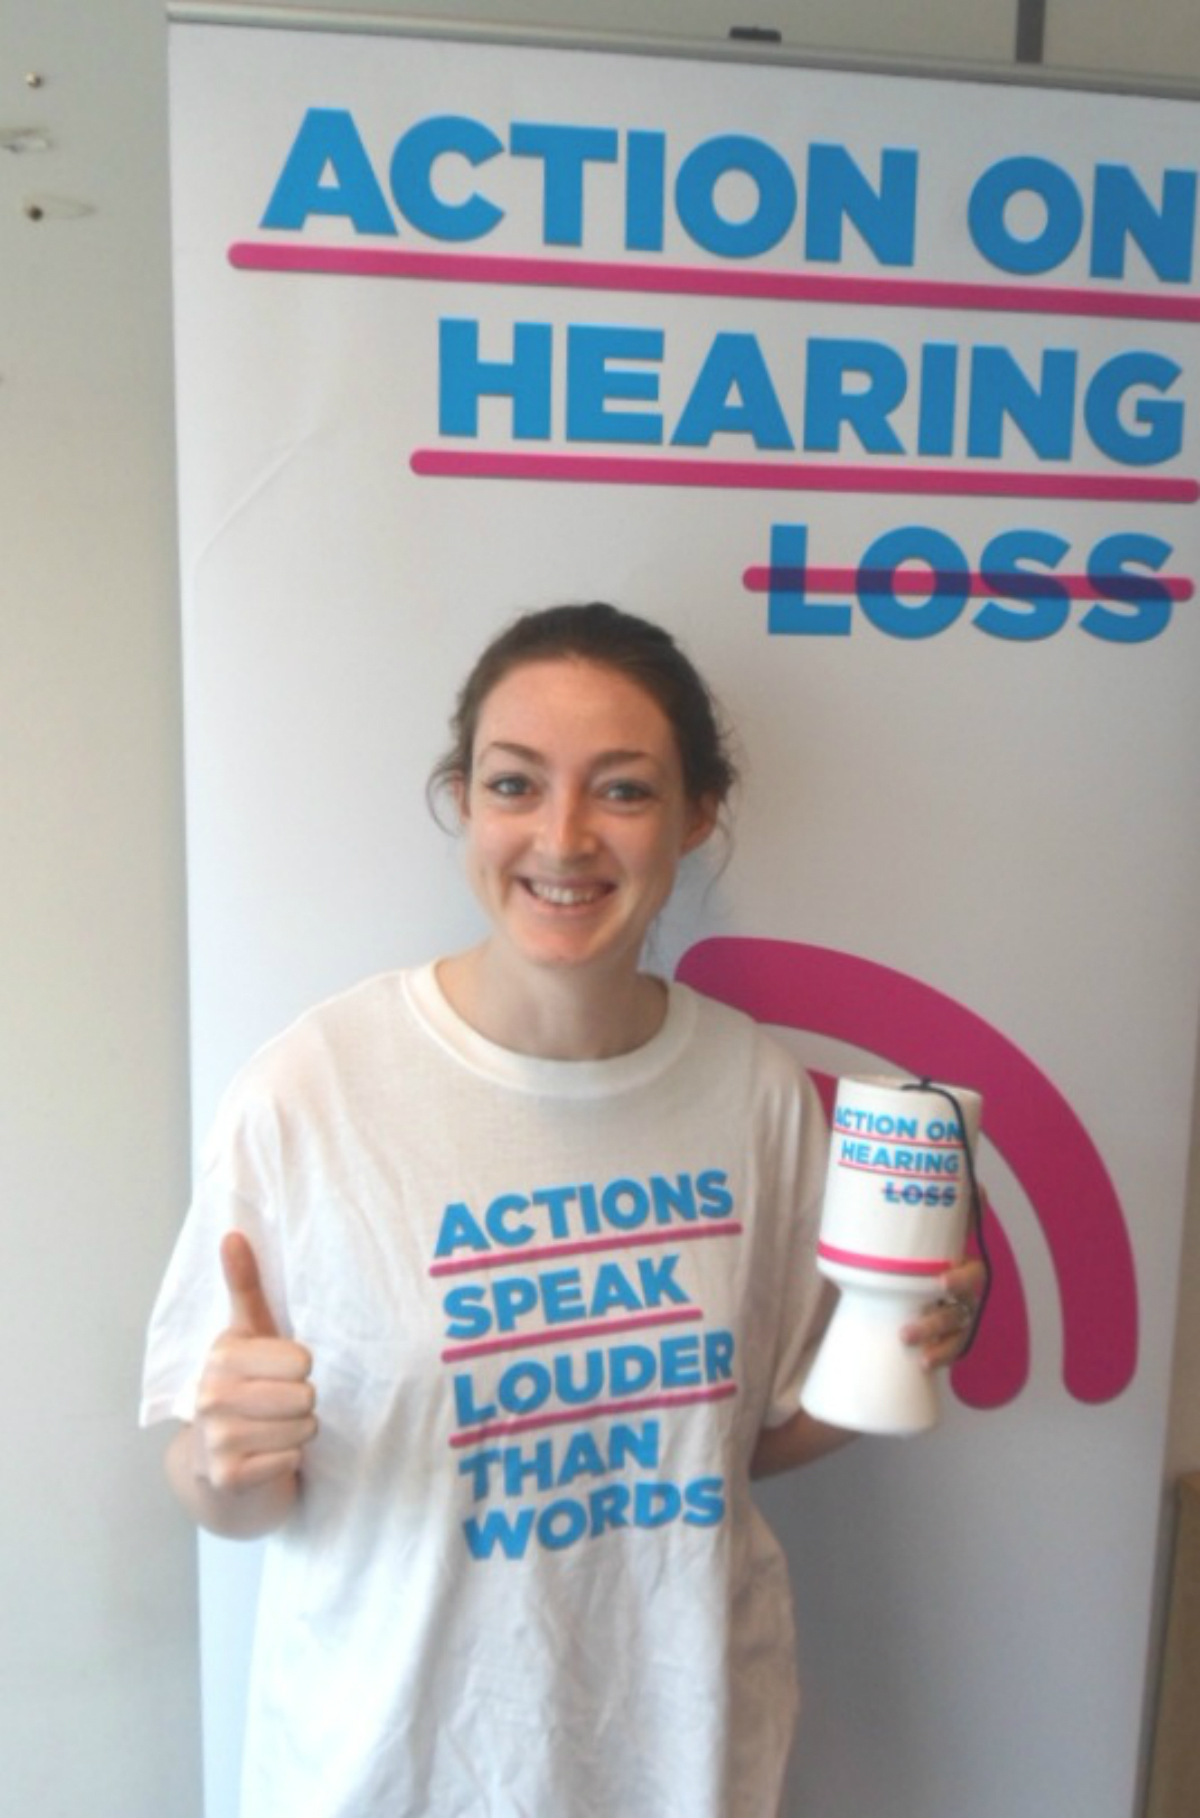 Crystal Rolfe aims to complete the 26 mile trek through the capital in aid of the Action on Hearing Loss